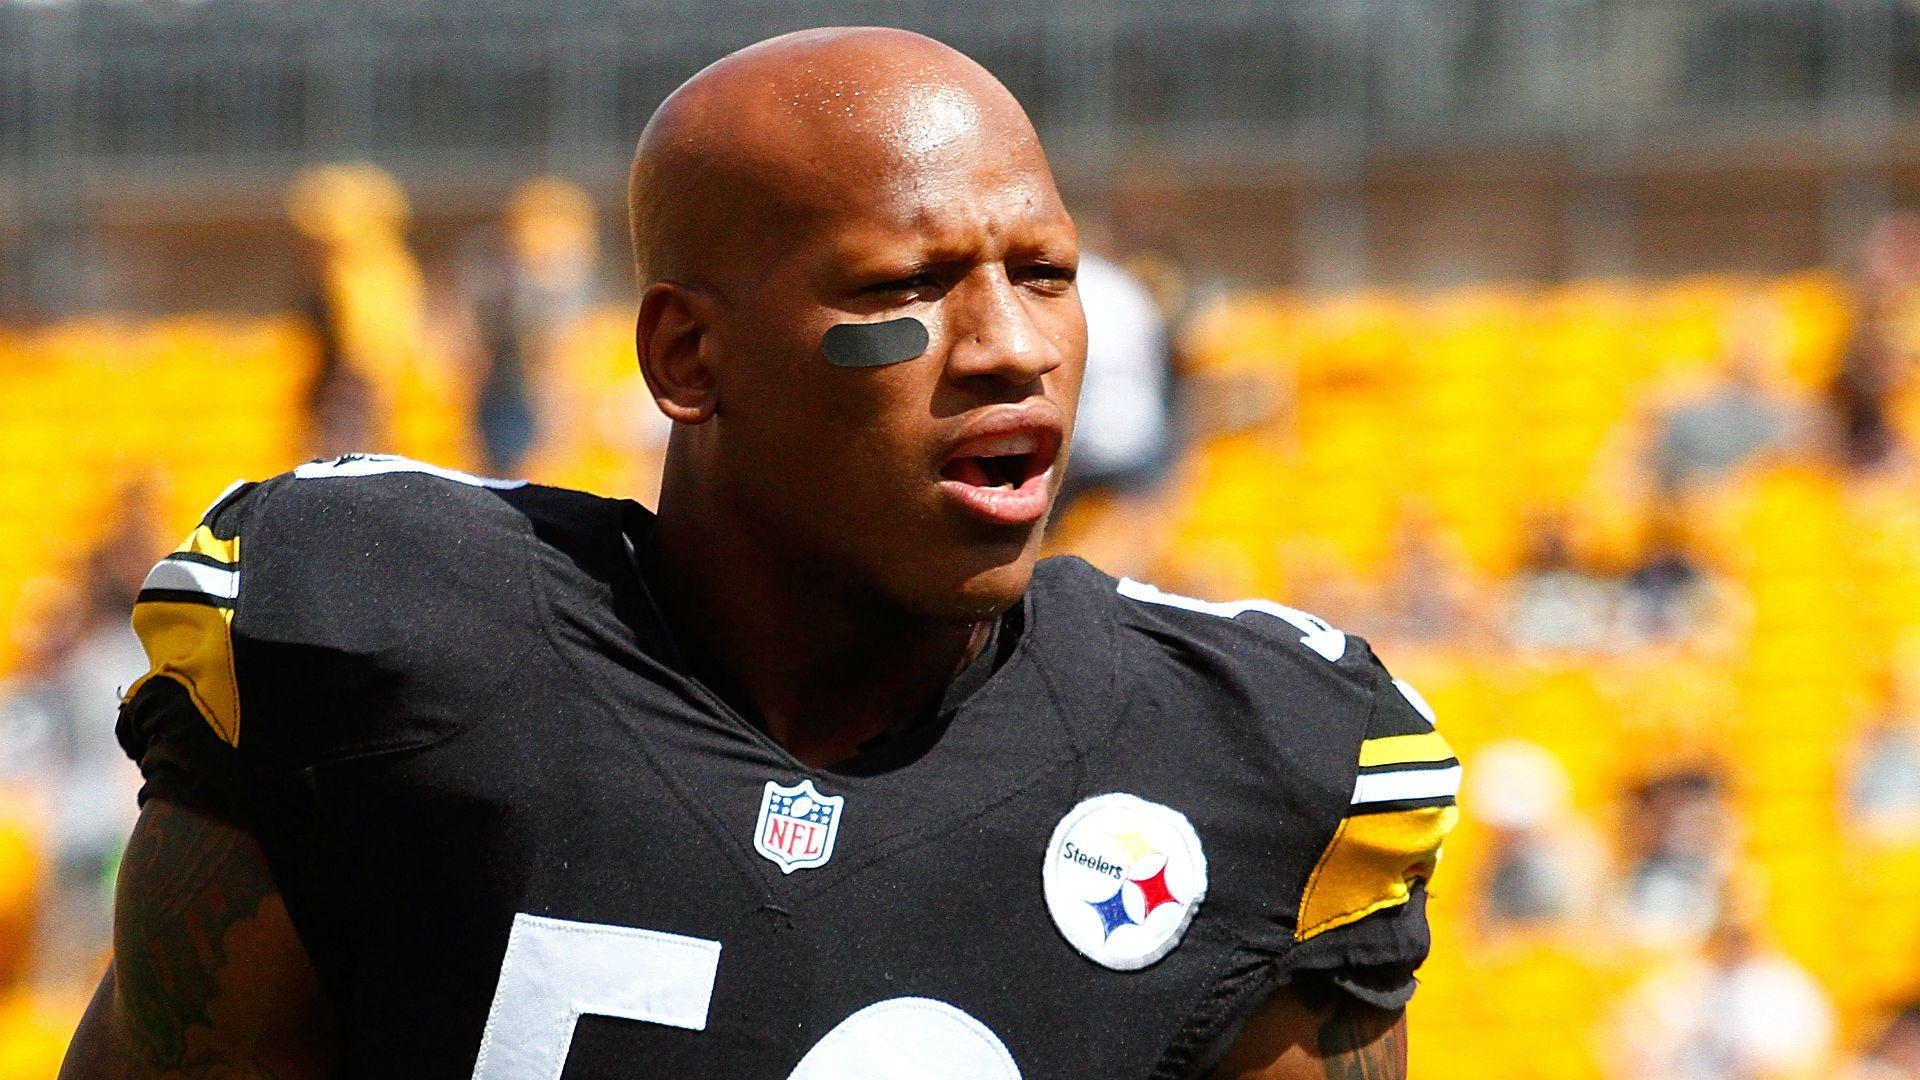 Steelers' Ryan Shazier goes bare in frigid Pittsburgh | NFL ...